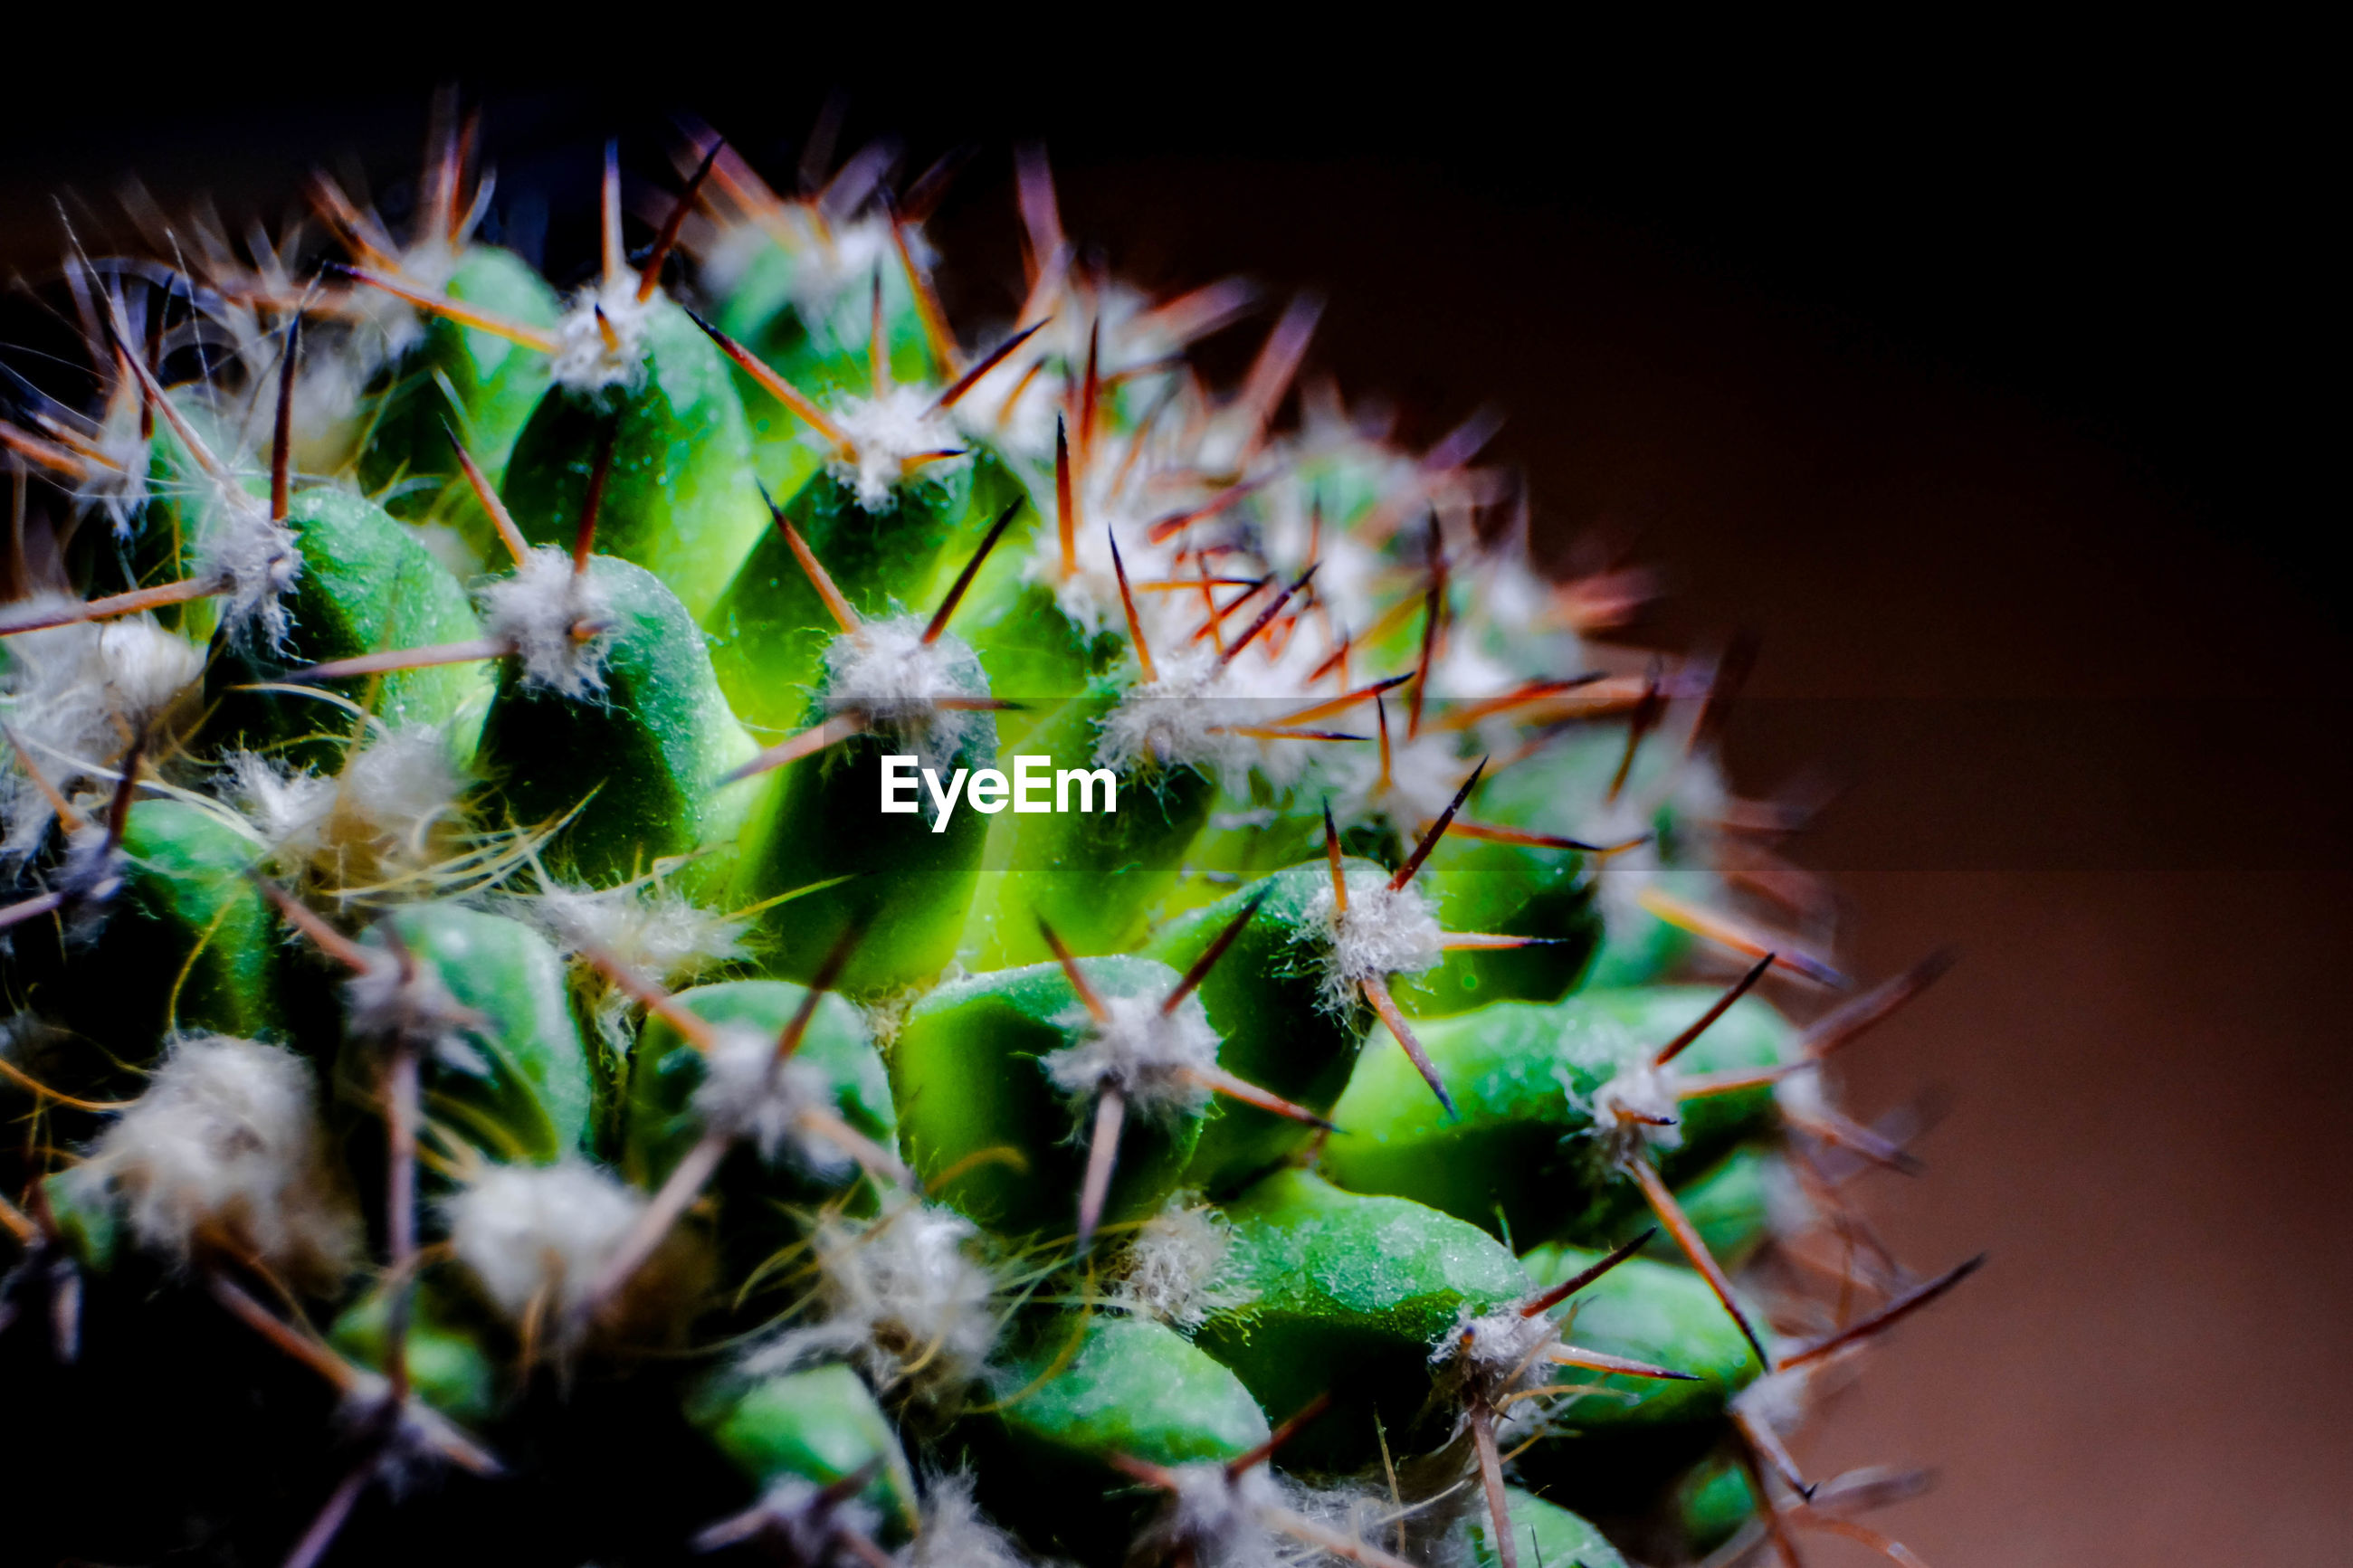 succulent plant, cactus, thorn, growth, close-up, plant, spiked, beauty in nature, selective focus, sharp, green color, nature, no people, potted plant, day, freshness, vulnerability, spiky, flower, outdoors